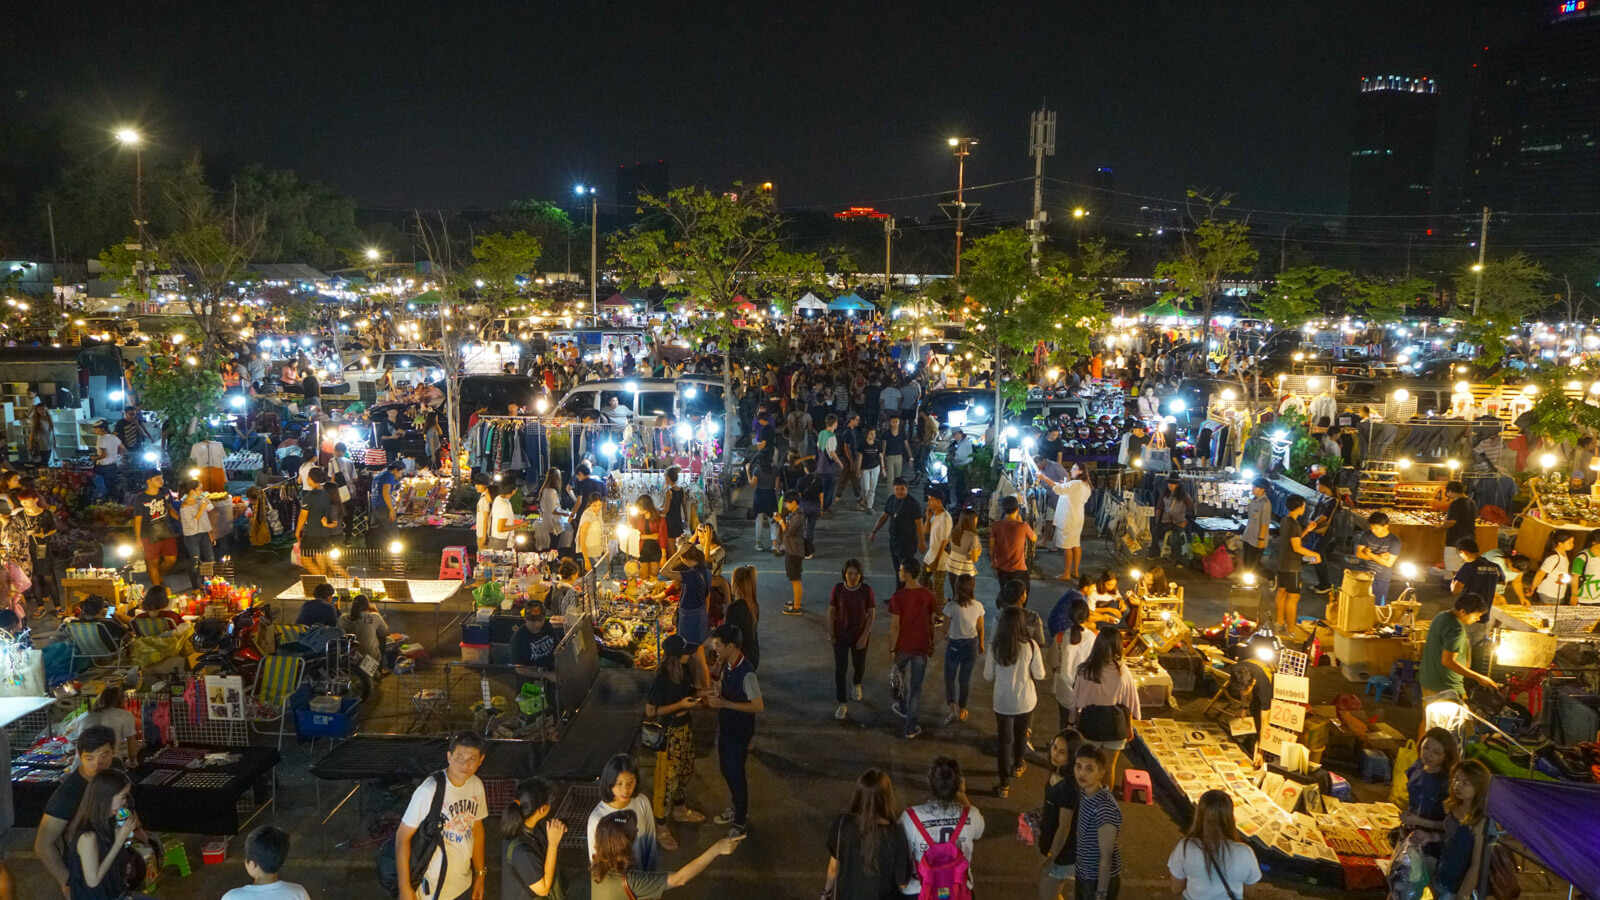 JJ Green night market in Bangkok is the coolest and quirkiest night market in all of Thailand